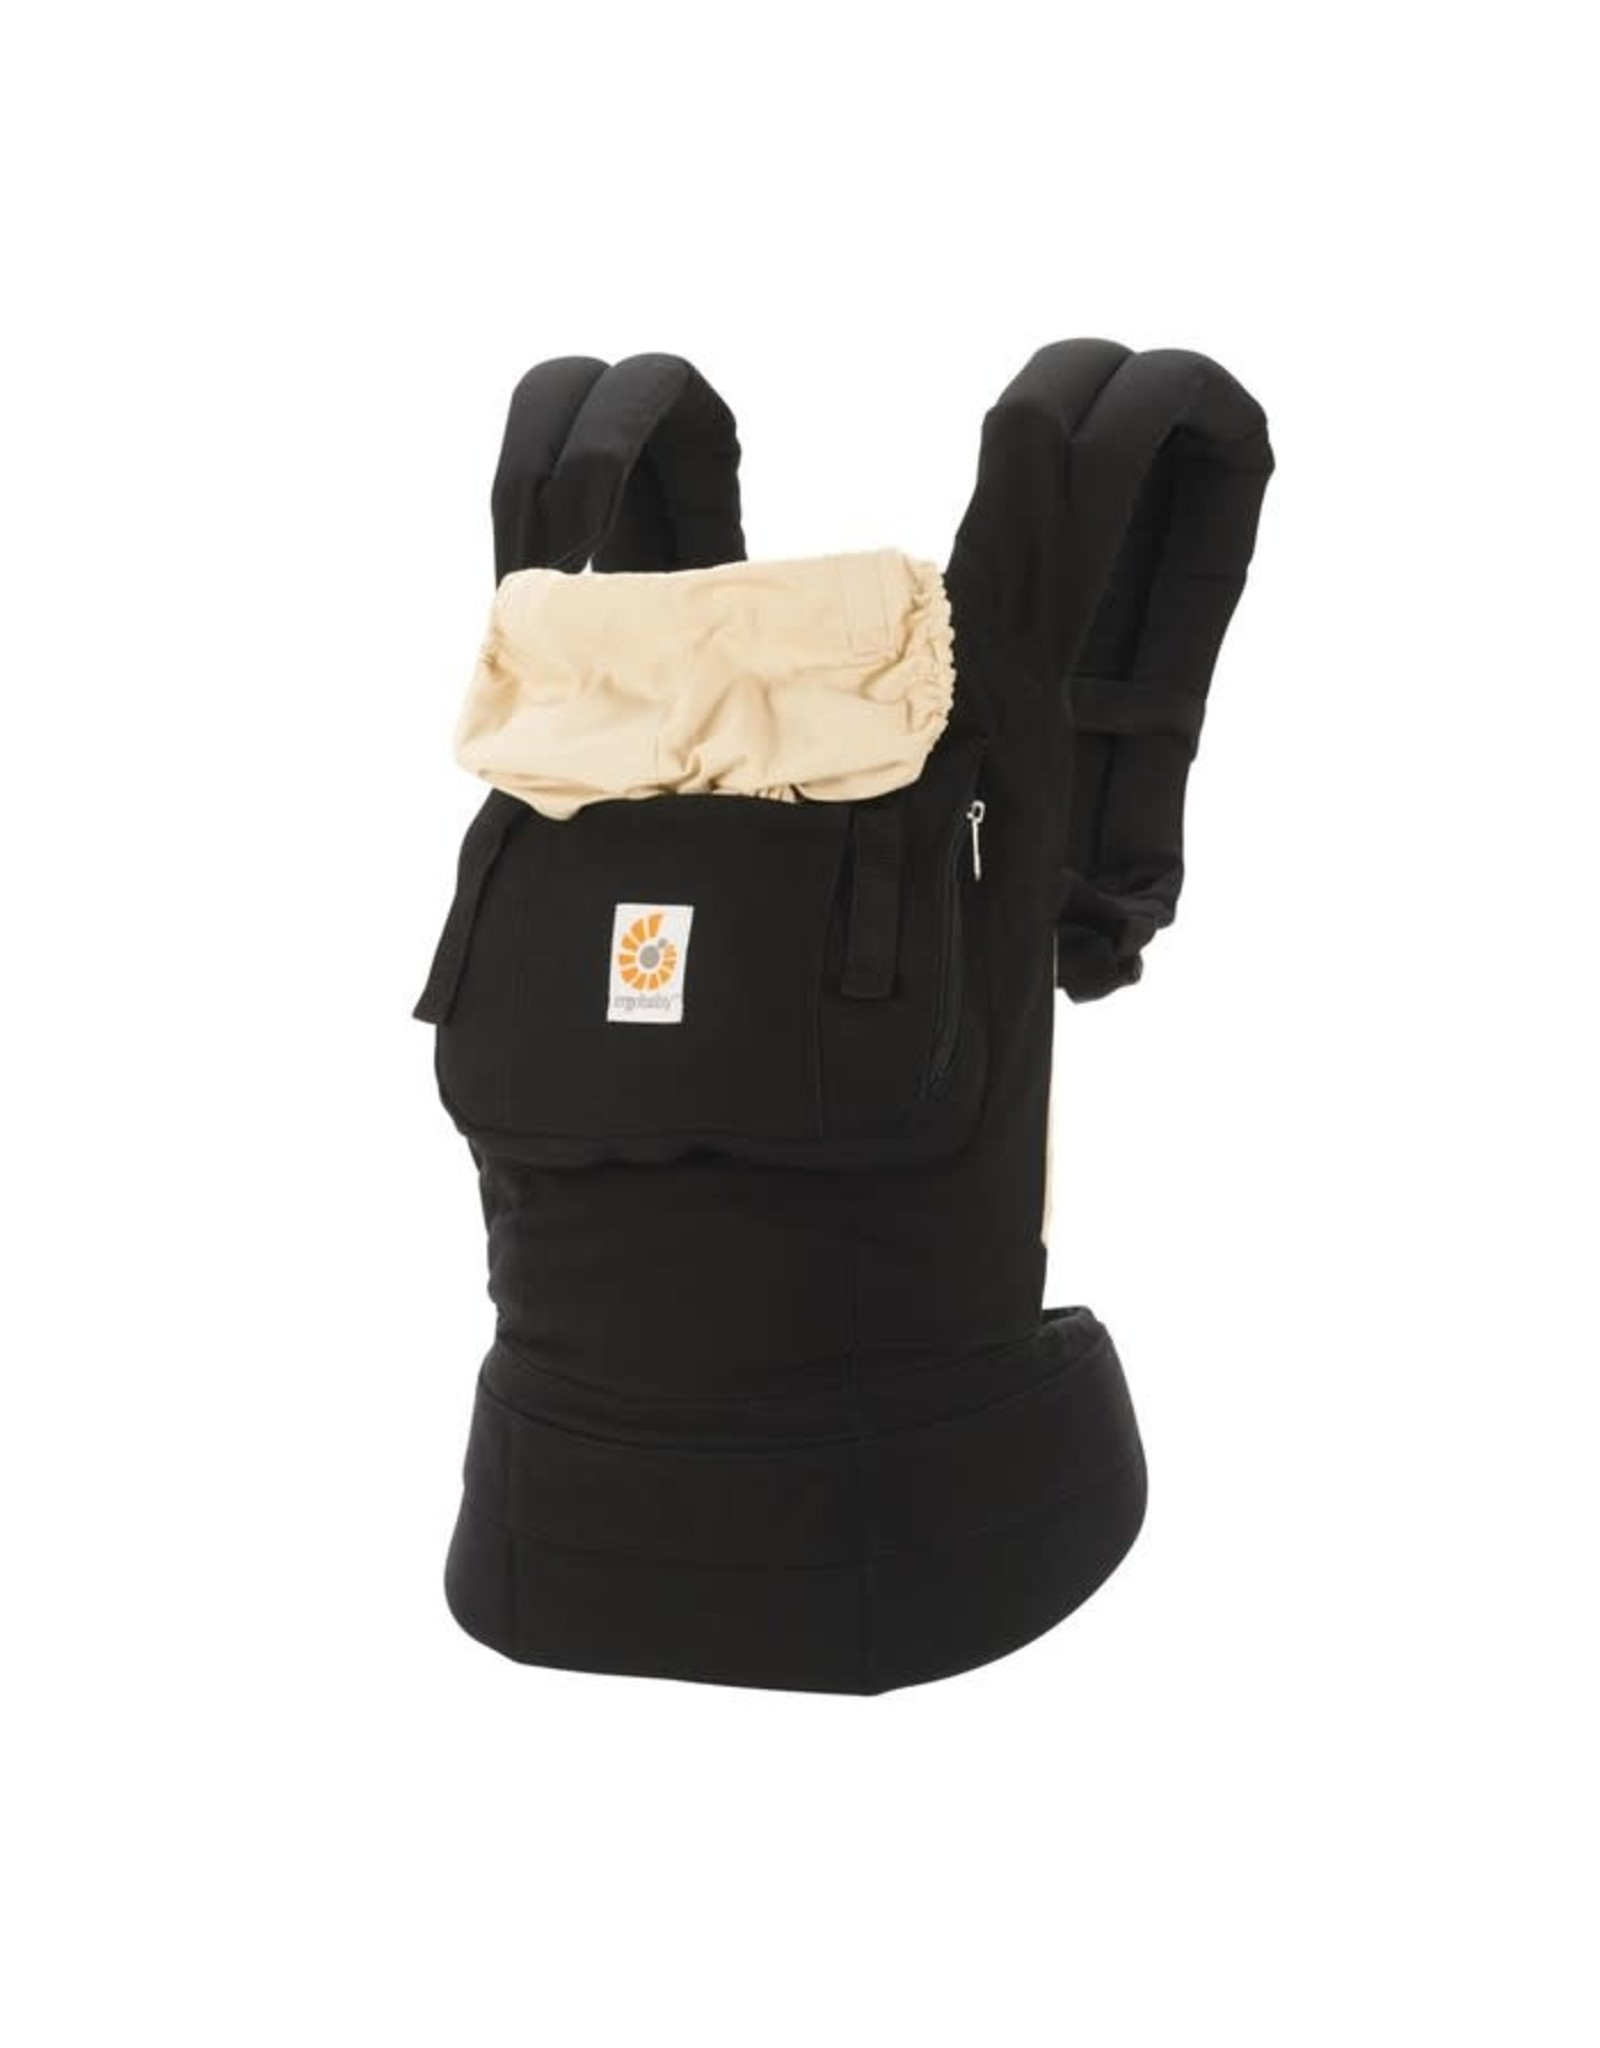 ERGO Baby Ergobaby Original Carrier, Black/Camel